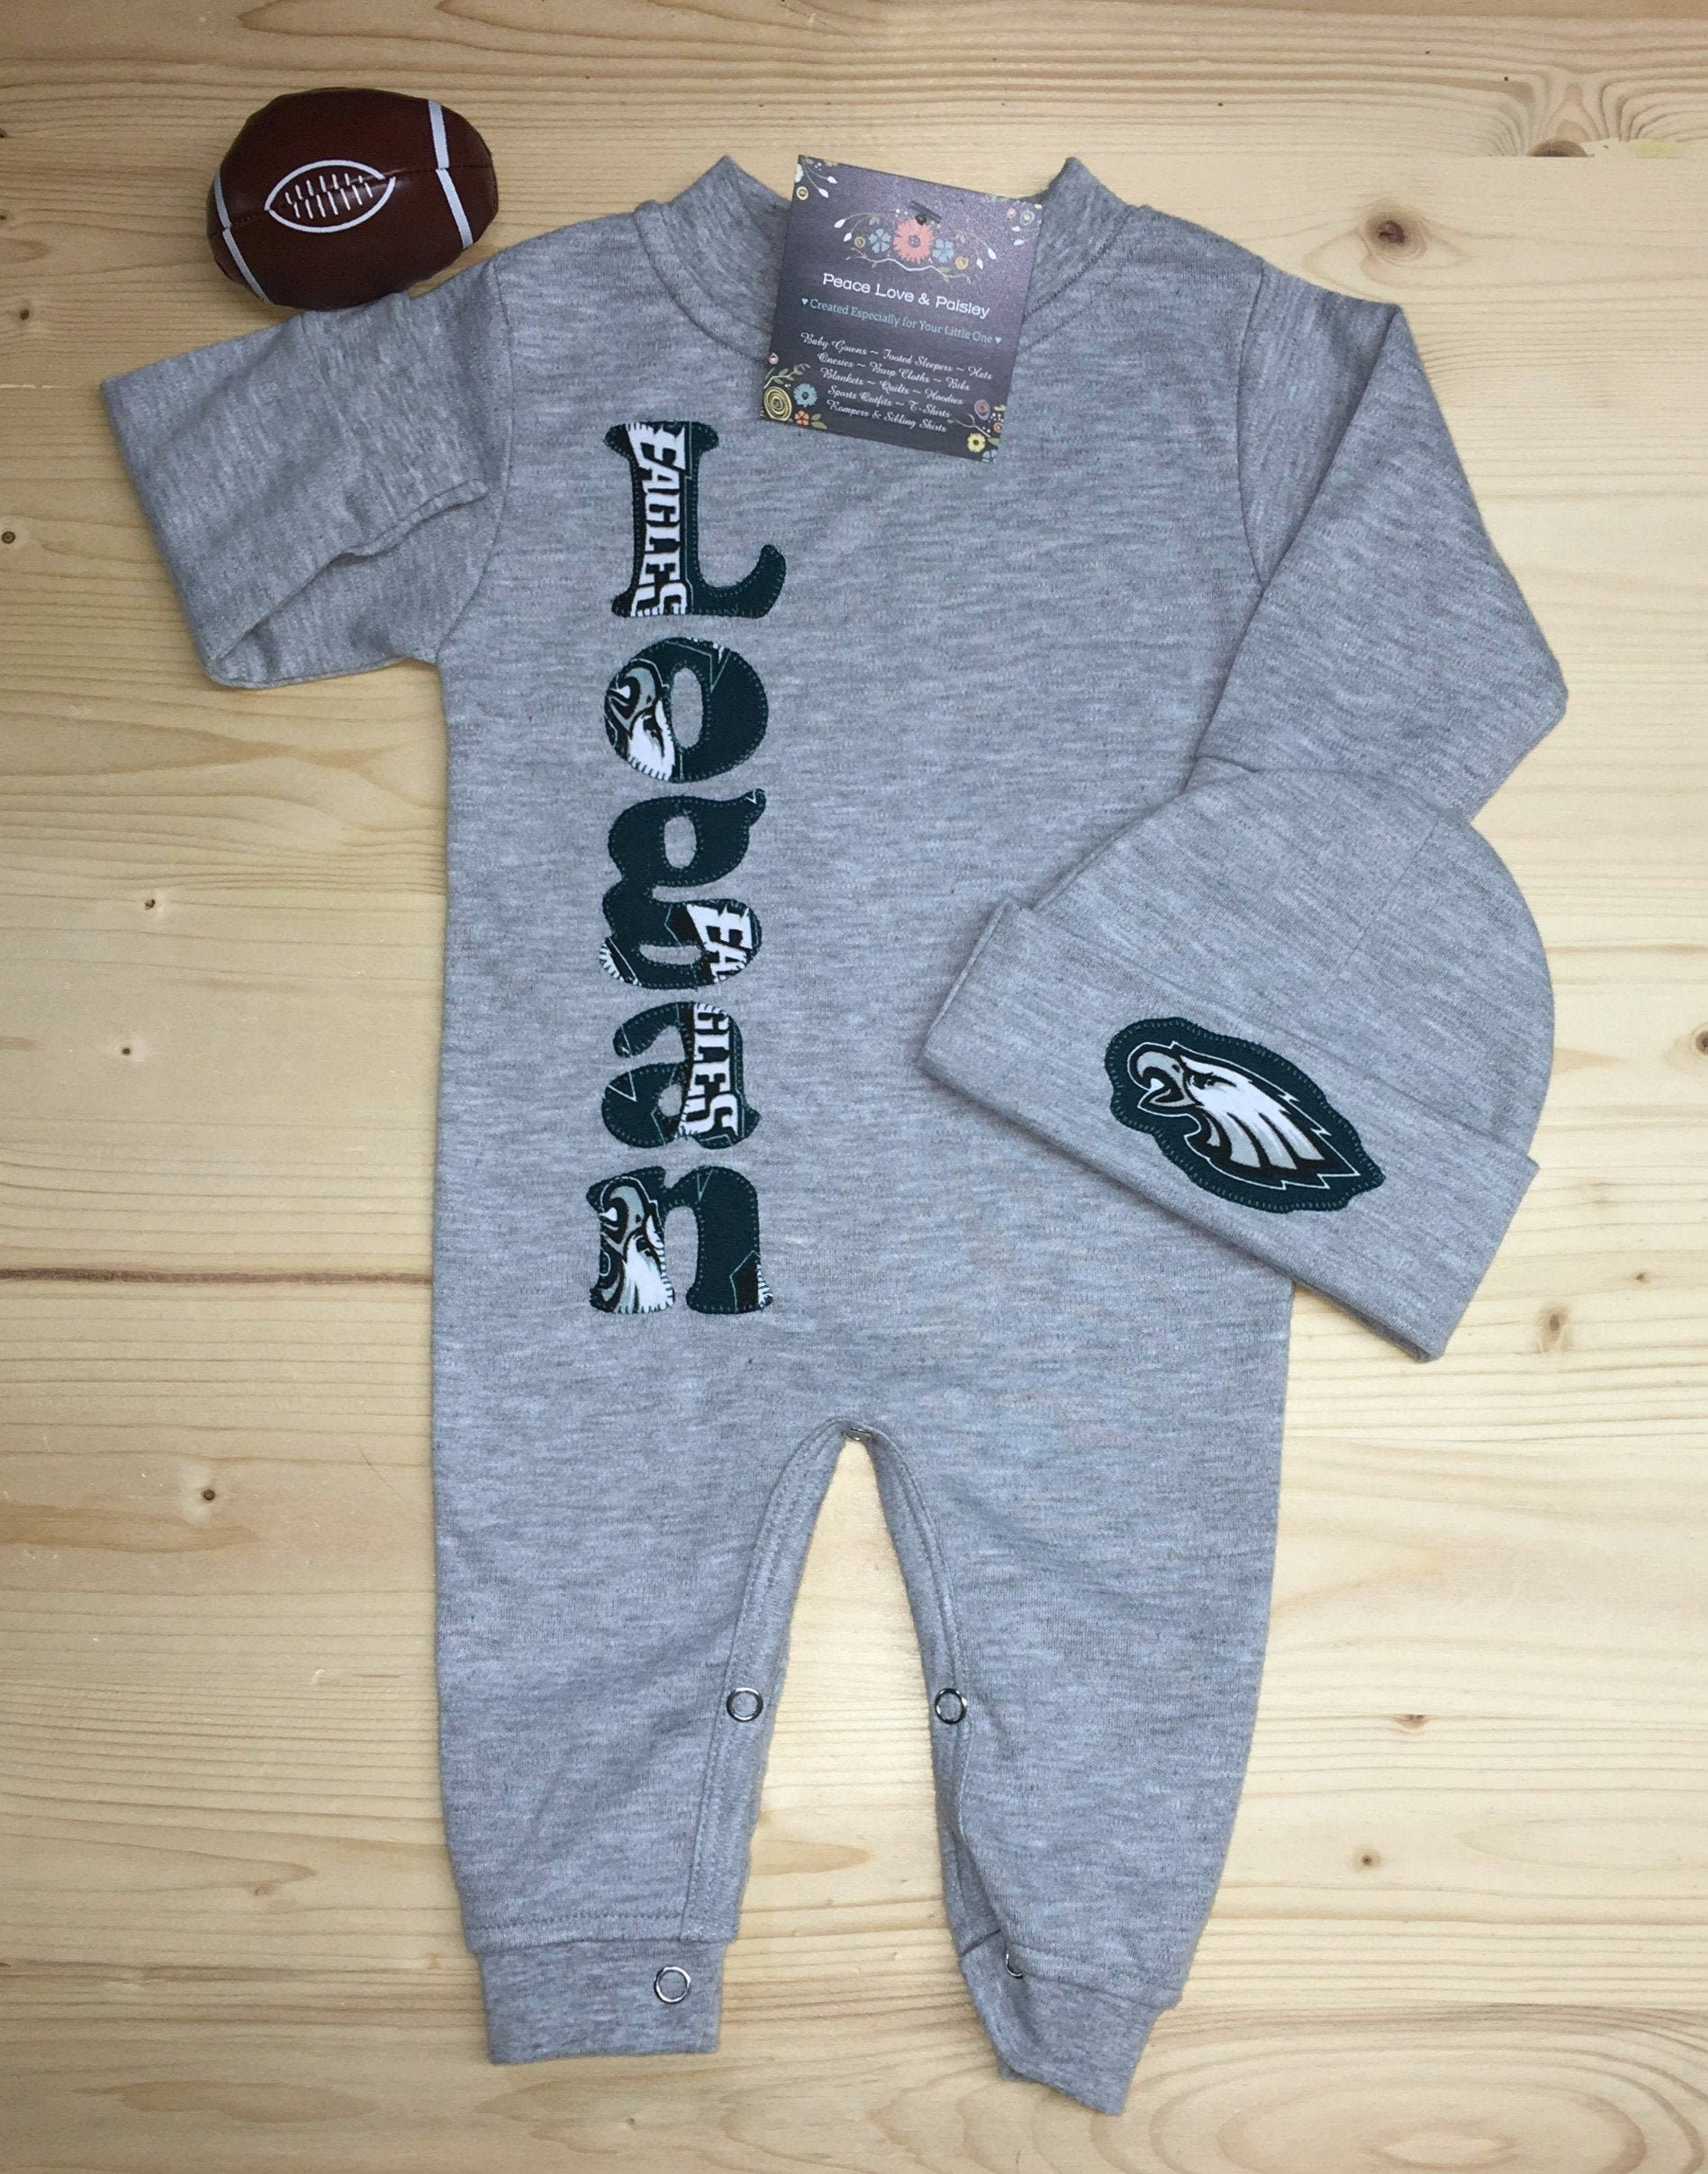 reputable site bac9c f0693 Philadelphia Eagles Personalized Baby Romper and Hat Set,Eagles Baby  Outfit,Personalized Baby,Going Home Outfit,Baby Shower Gift,NFL Baby